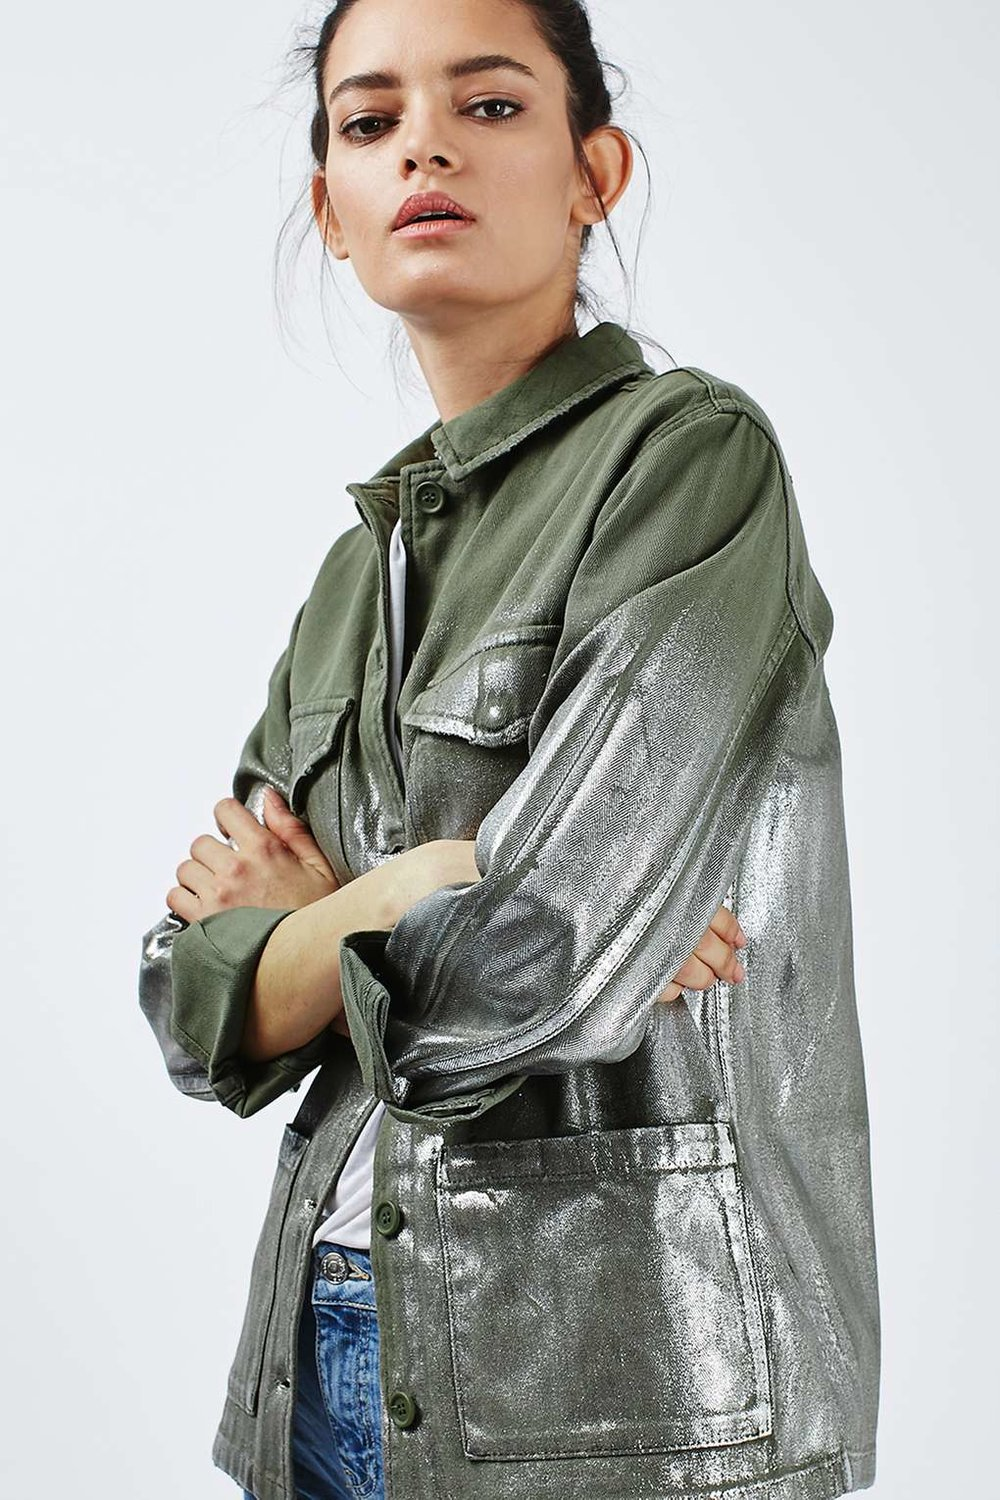 topshop-Foil-Detailed-Lightweight-Shacket-model-outstyled.jpg